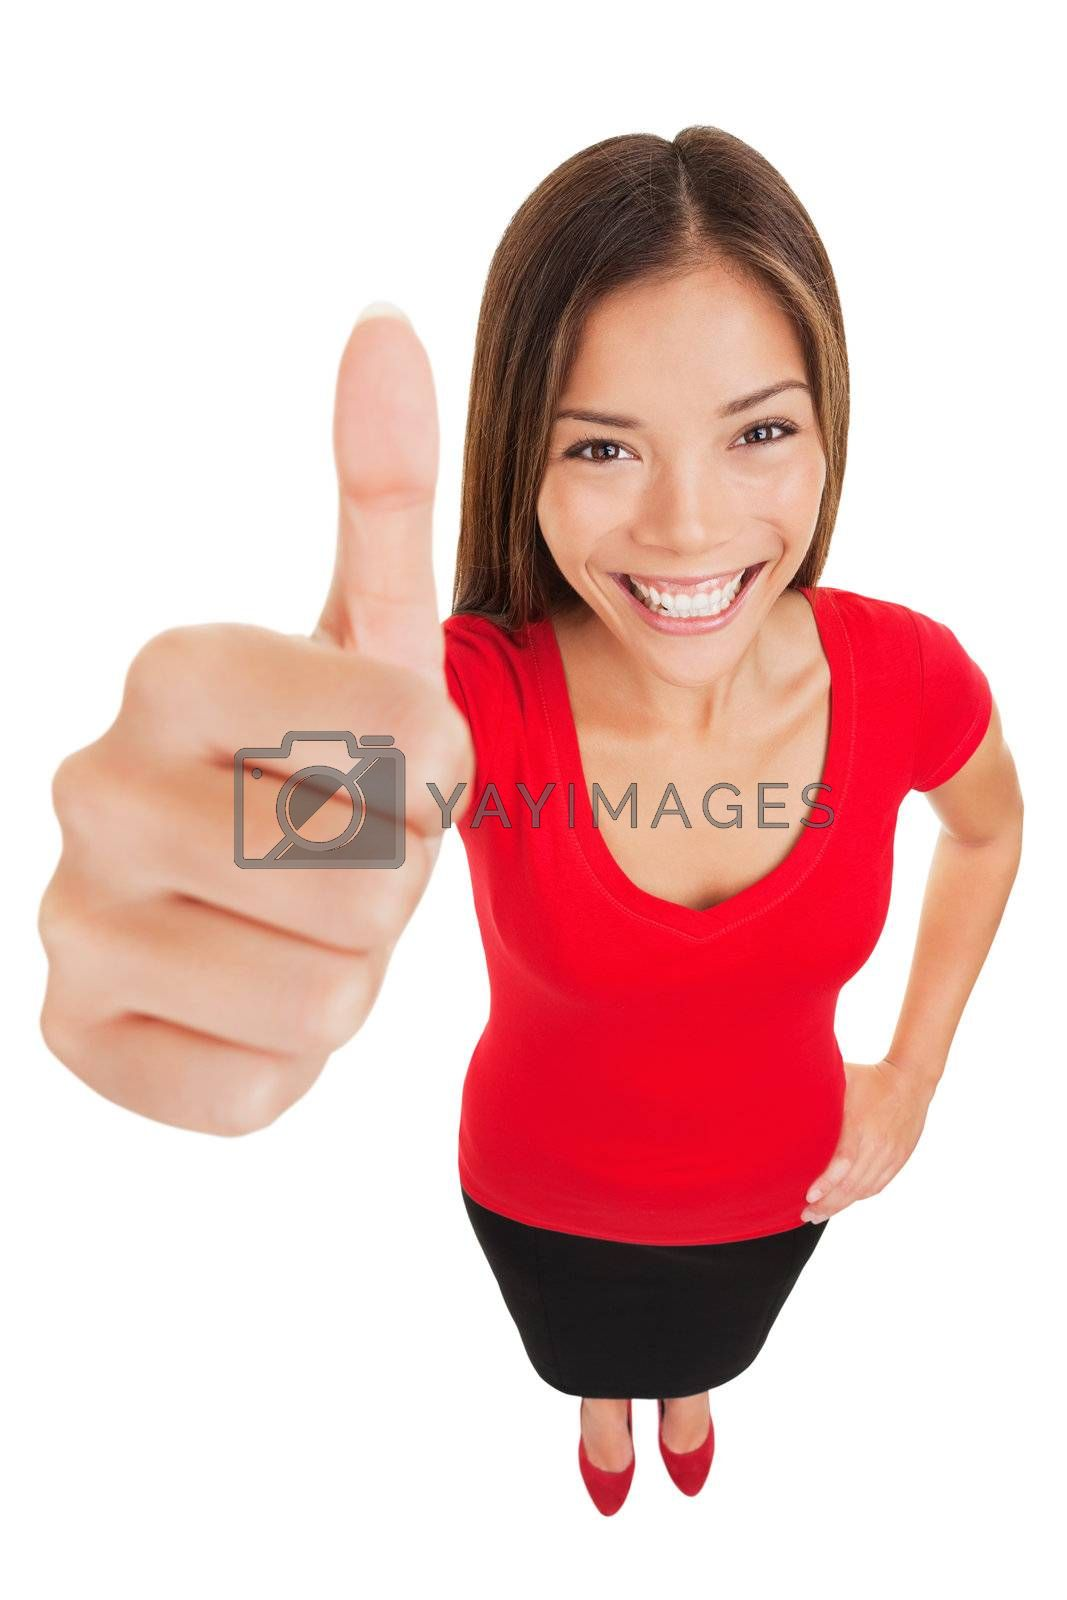 Thumbs up woman. Fun high angle full body portrait of a vivacious laughing woman giving a thumbs up gesture of approval as she looks at camera, isolated on white background. Mixed race businesswoman